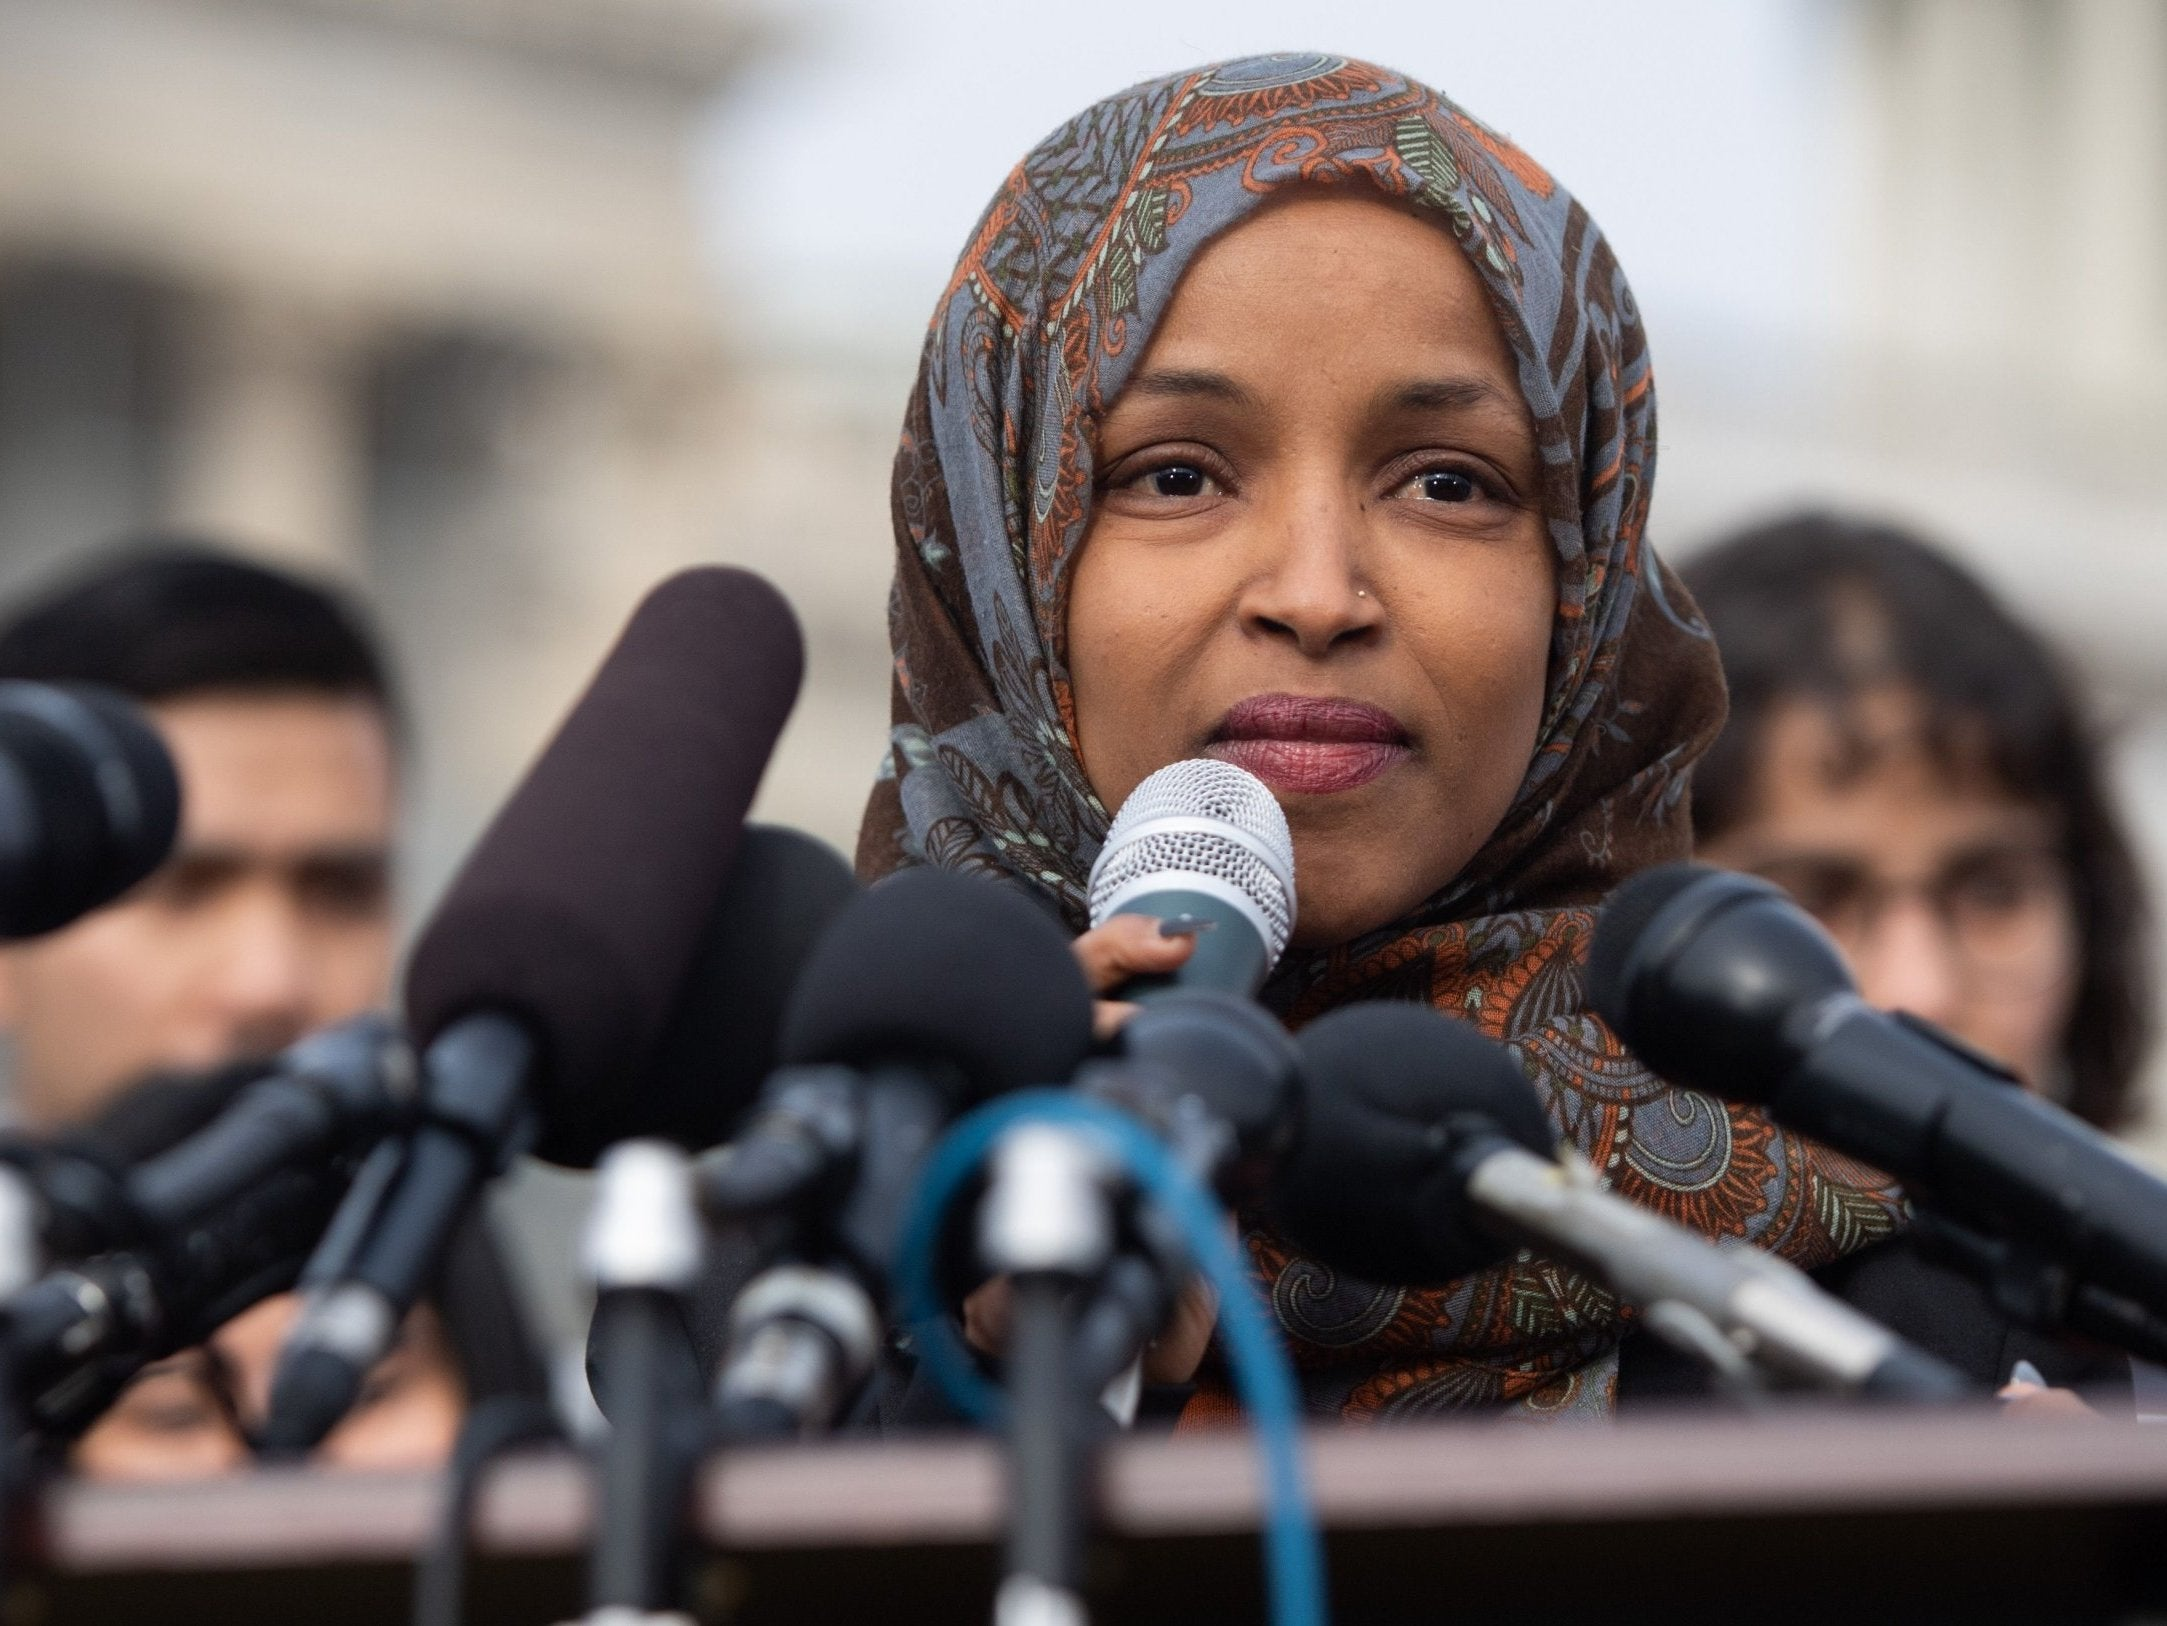 What did Ilhan Omar say about Israel? The anti-Semitism